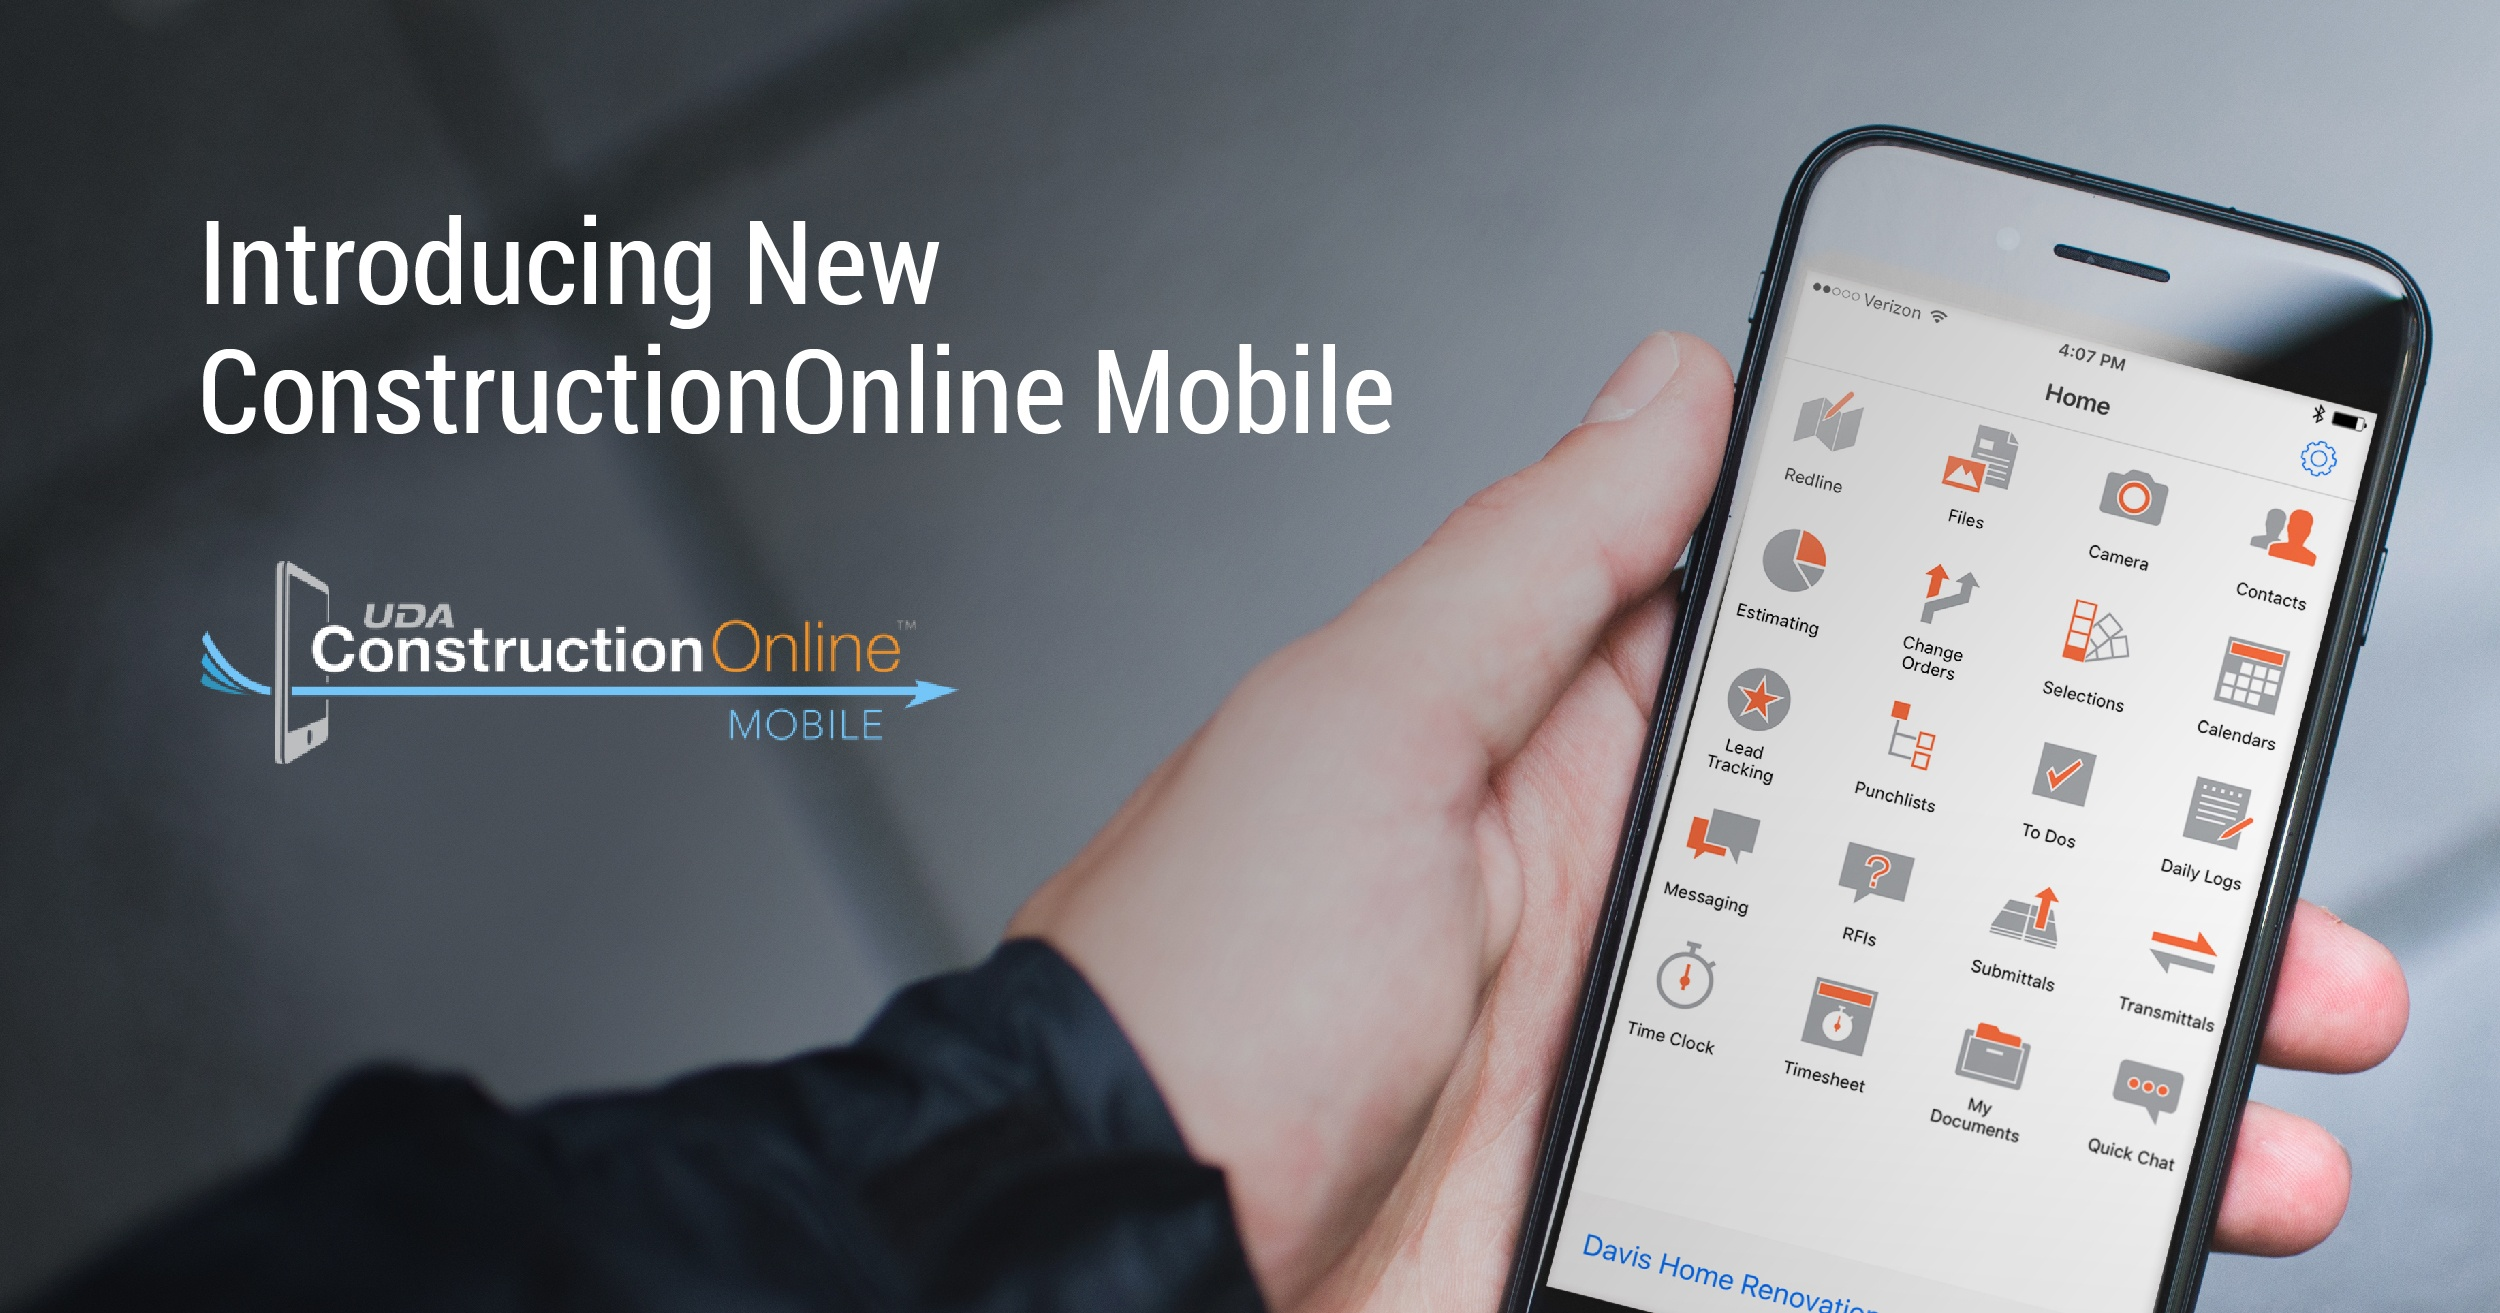 Introducing the ConstructionOnline Mobile App